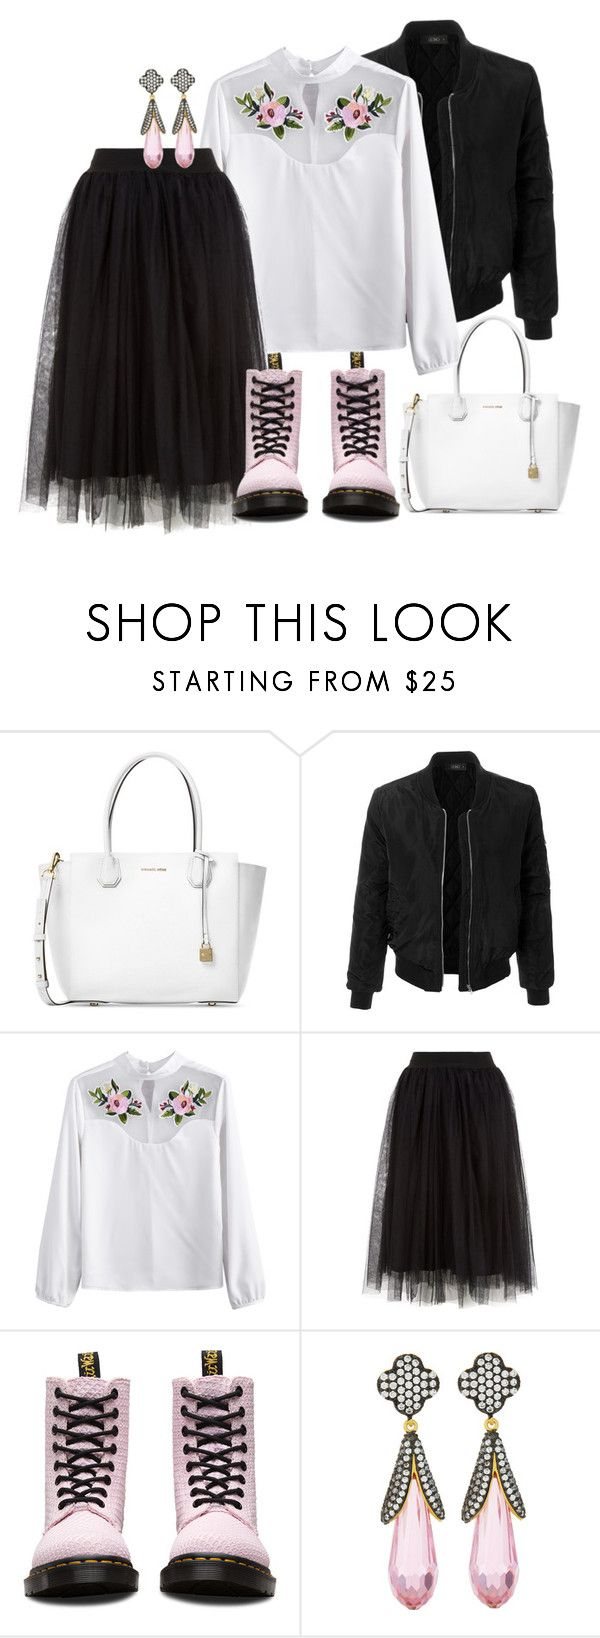 """Pink/Black/White"" by morinef ❤ liked on Polyvore featuring Michael Kors, LE3NO, Dr. Martens and Freida Rothman"